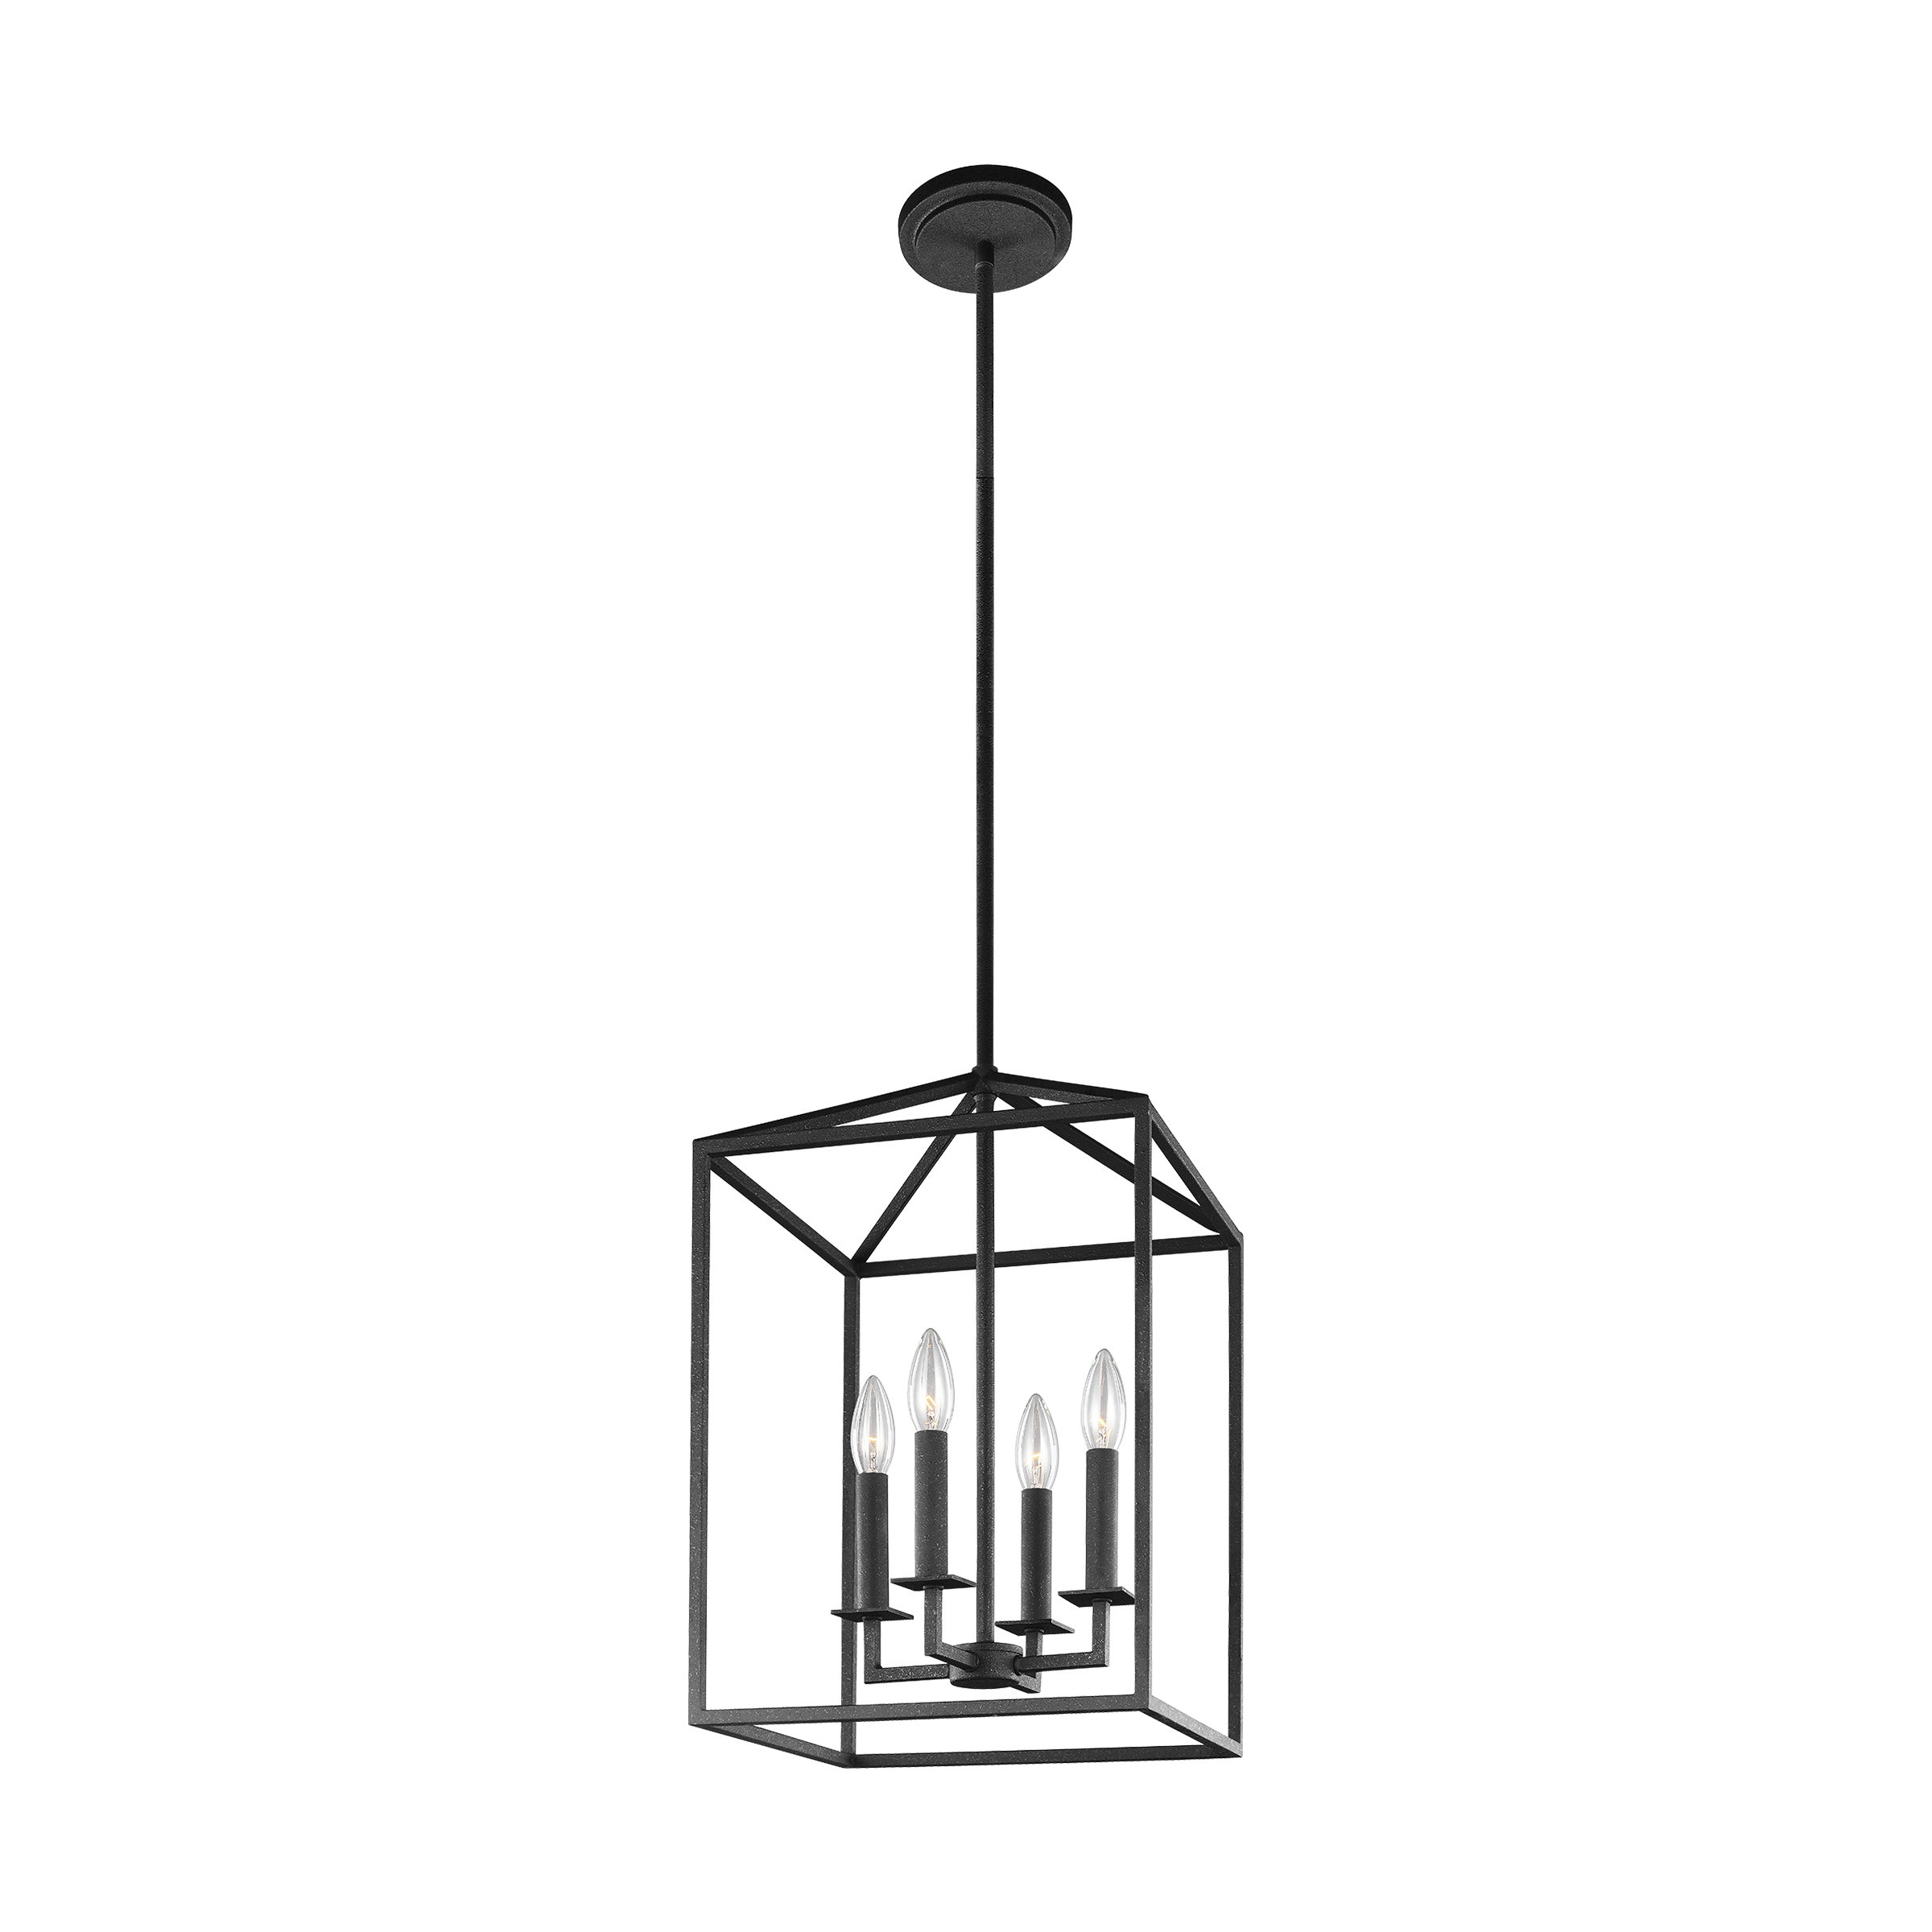 Odie 4 Light Lantern Square / Rectangle Pendant Throughout Well Known 4 Light Lantern Square / Rectangle Pendants (View 16 of 20)